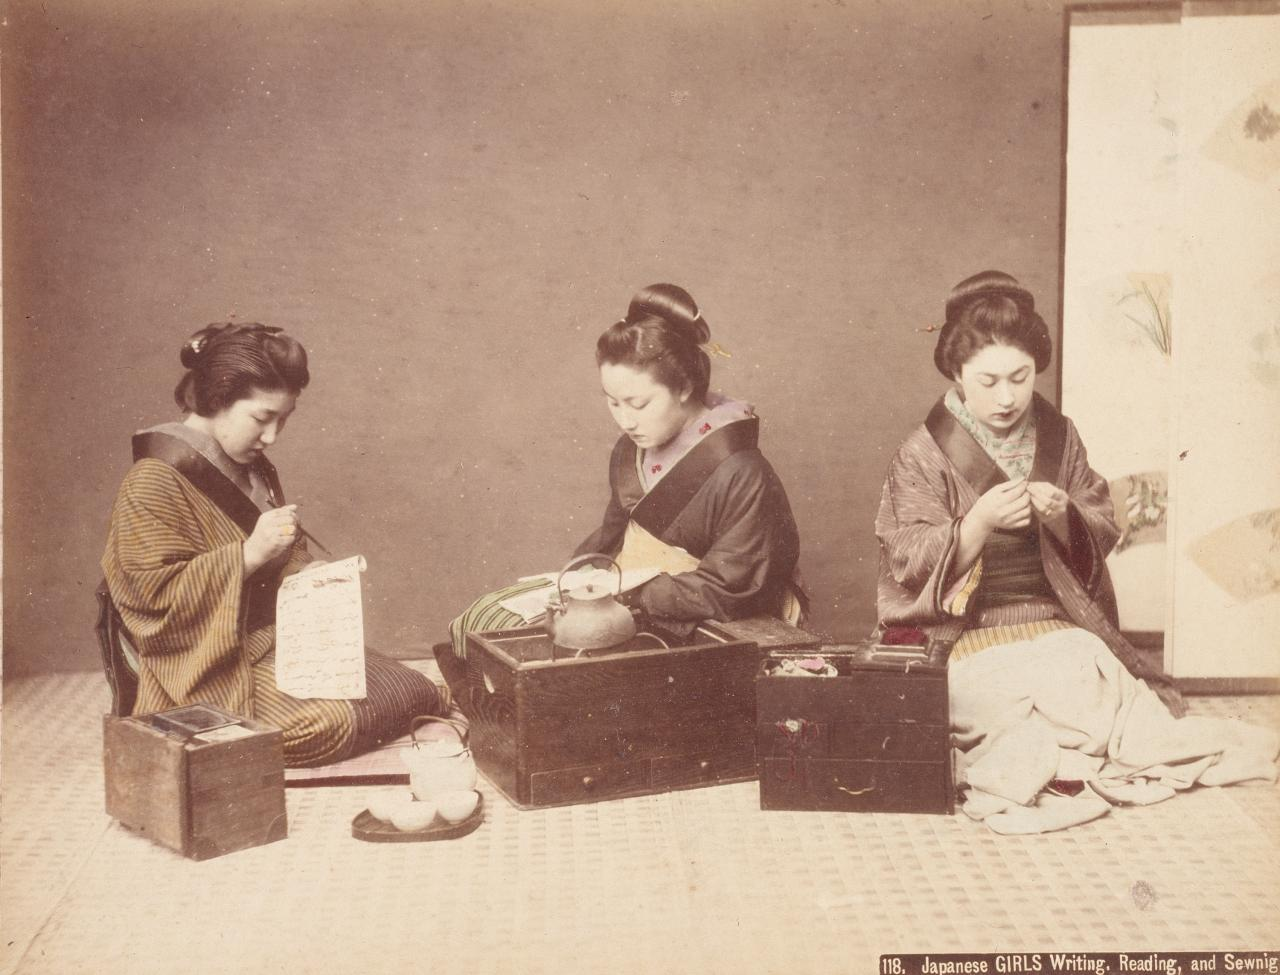 Japanese girls writing, reading and sewing